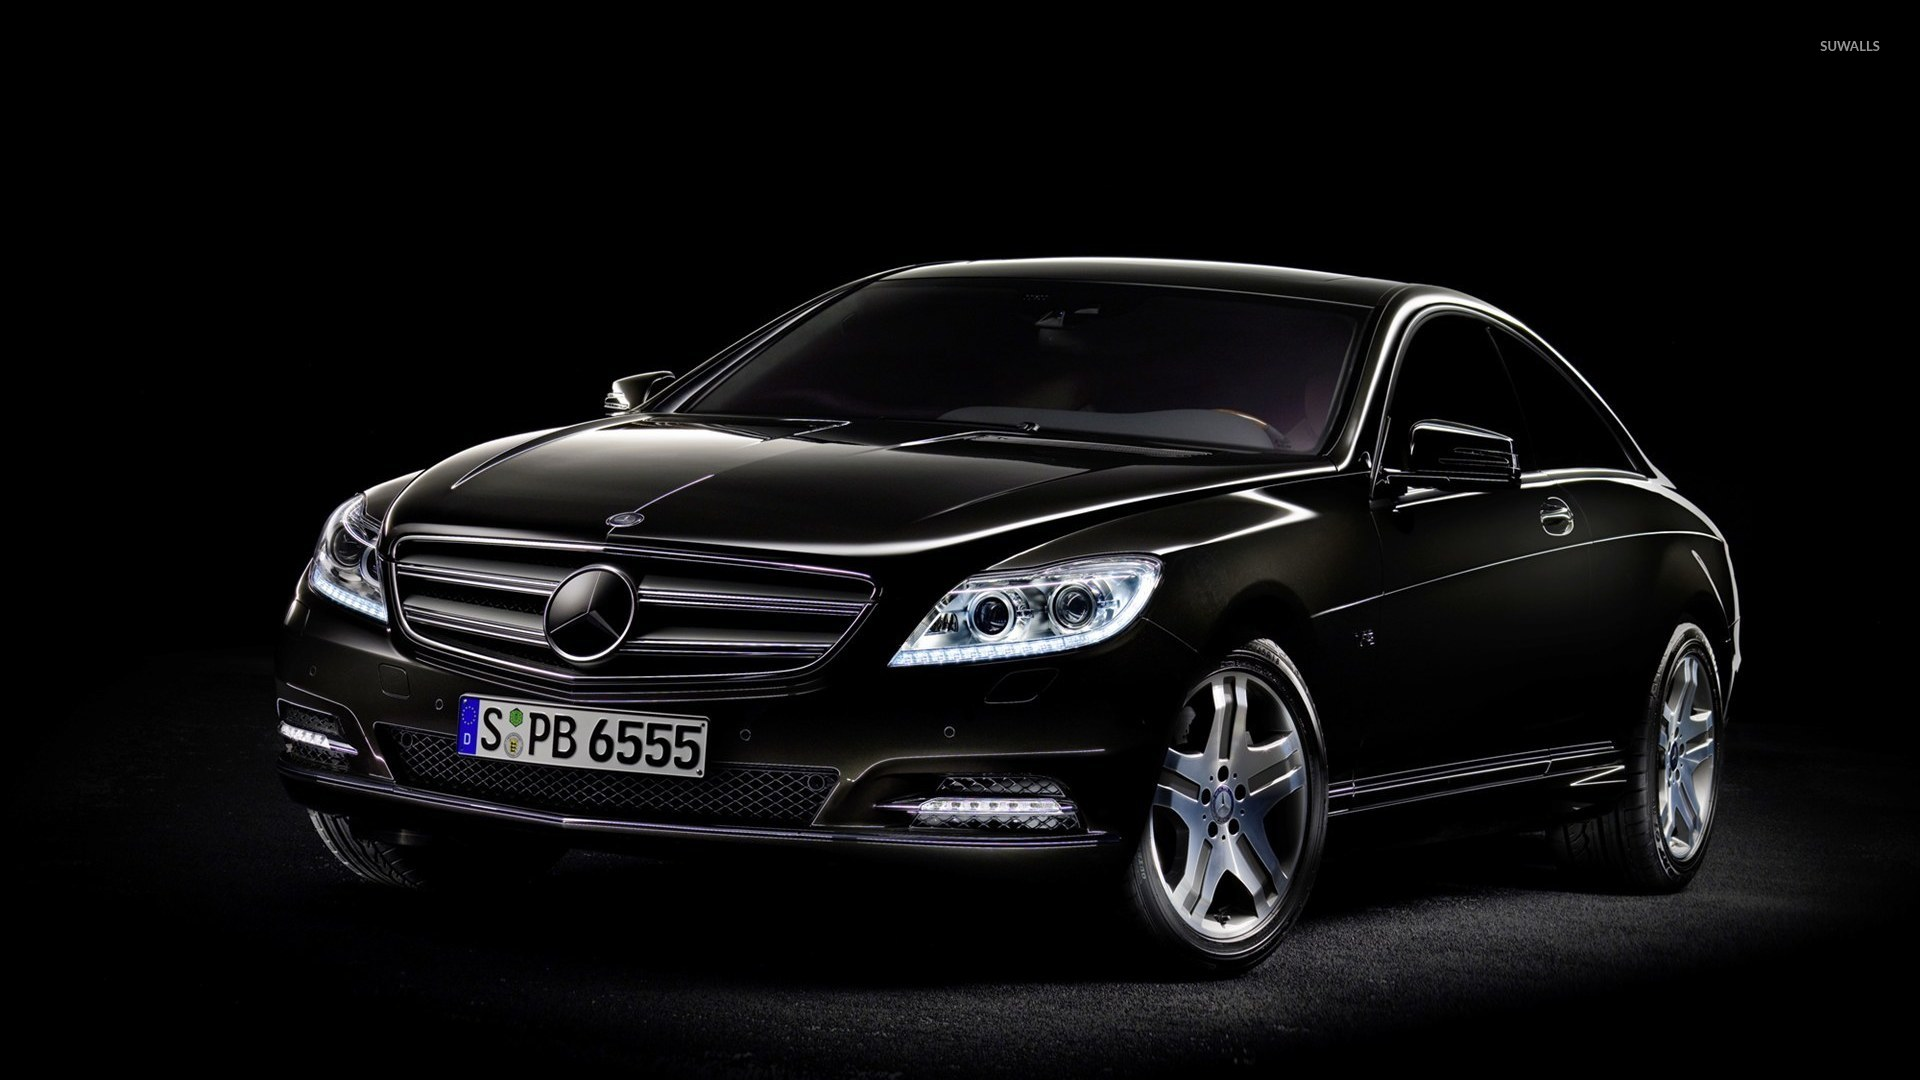 2011 mercedes benz c class coupe wallpaper car for 2011 mercedes benz c class c300